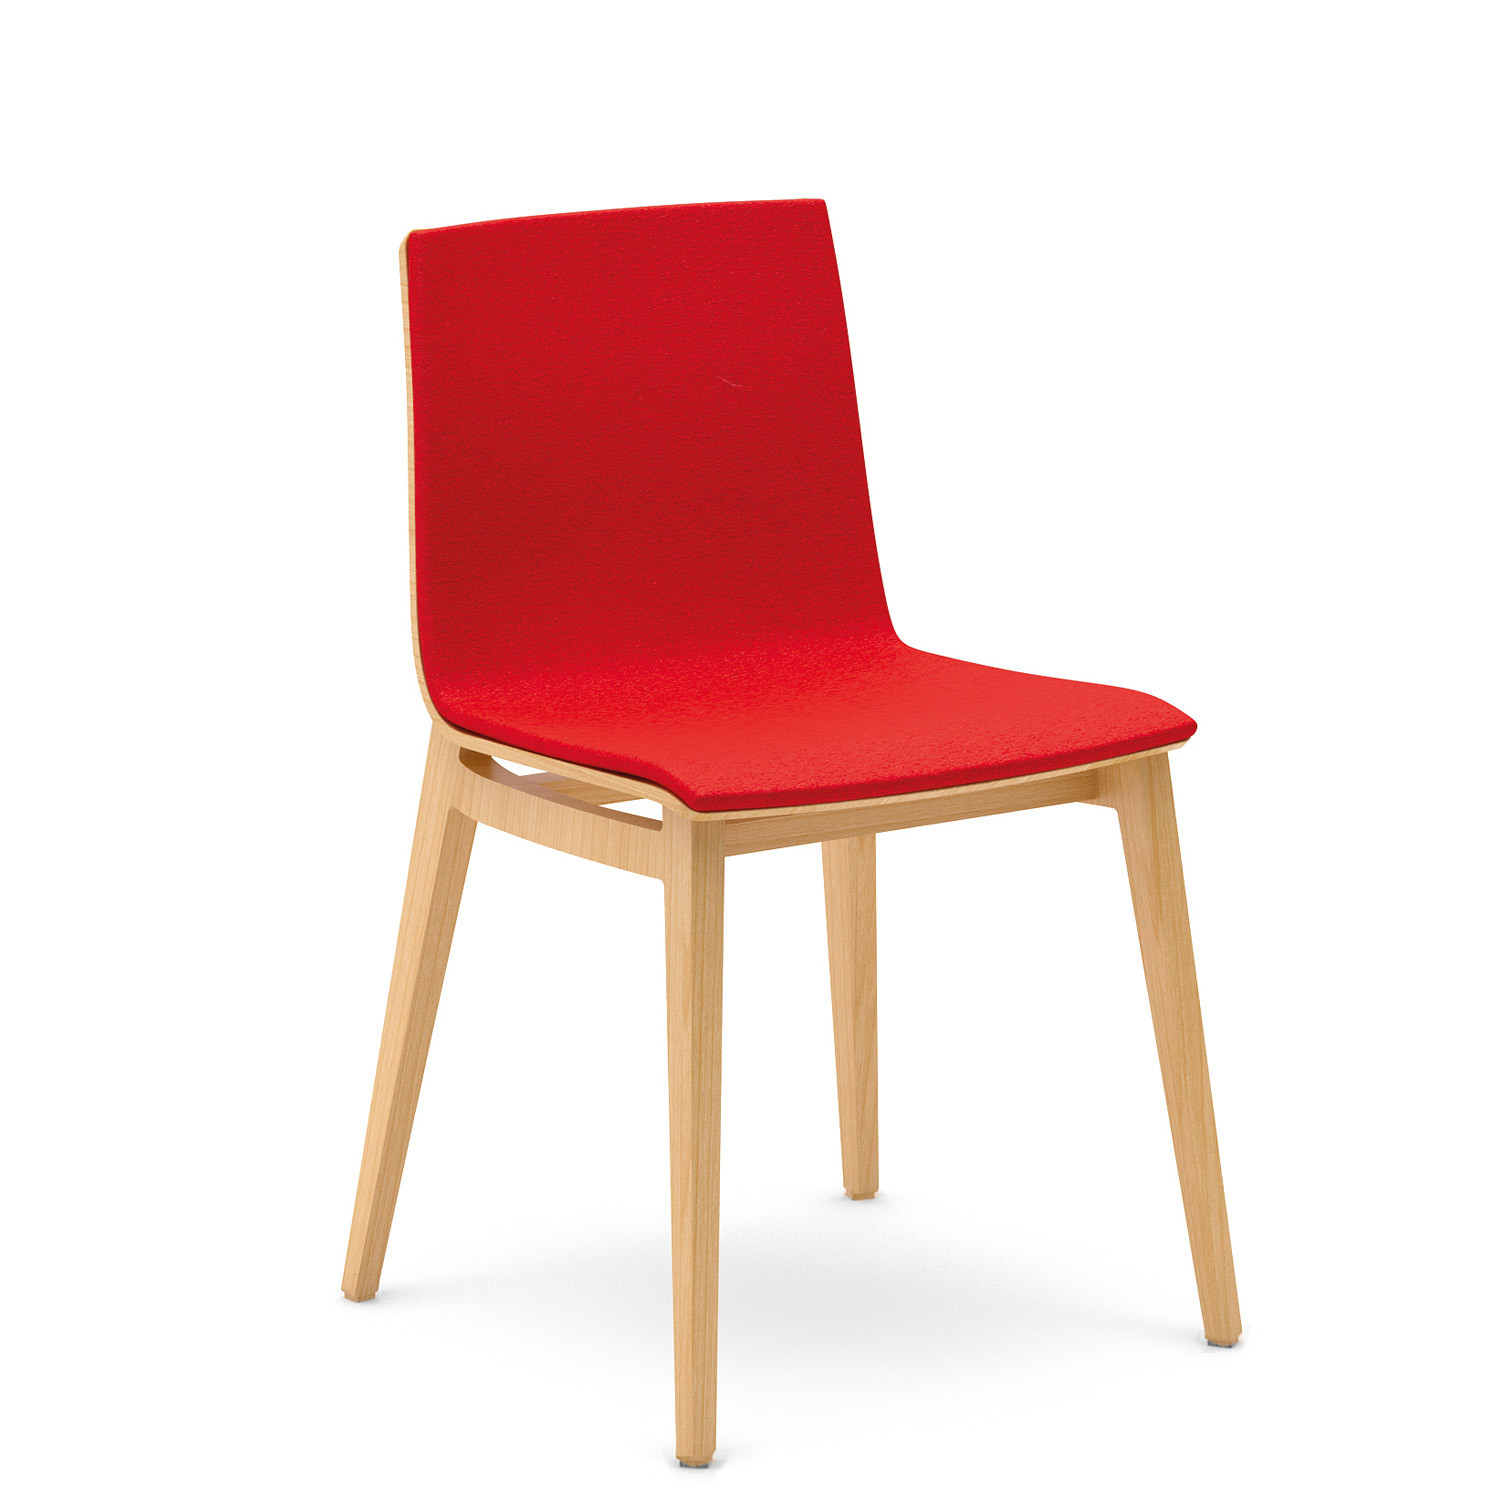 Emma Upholstered Wooden Chair